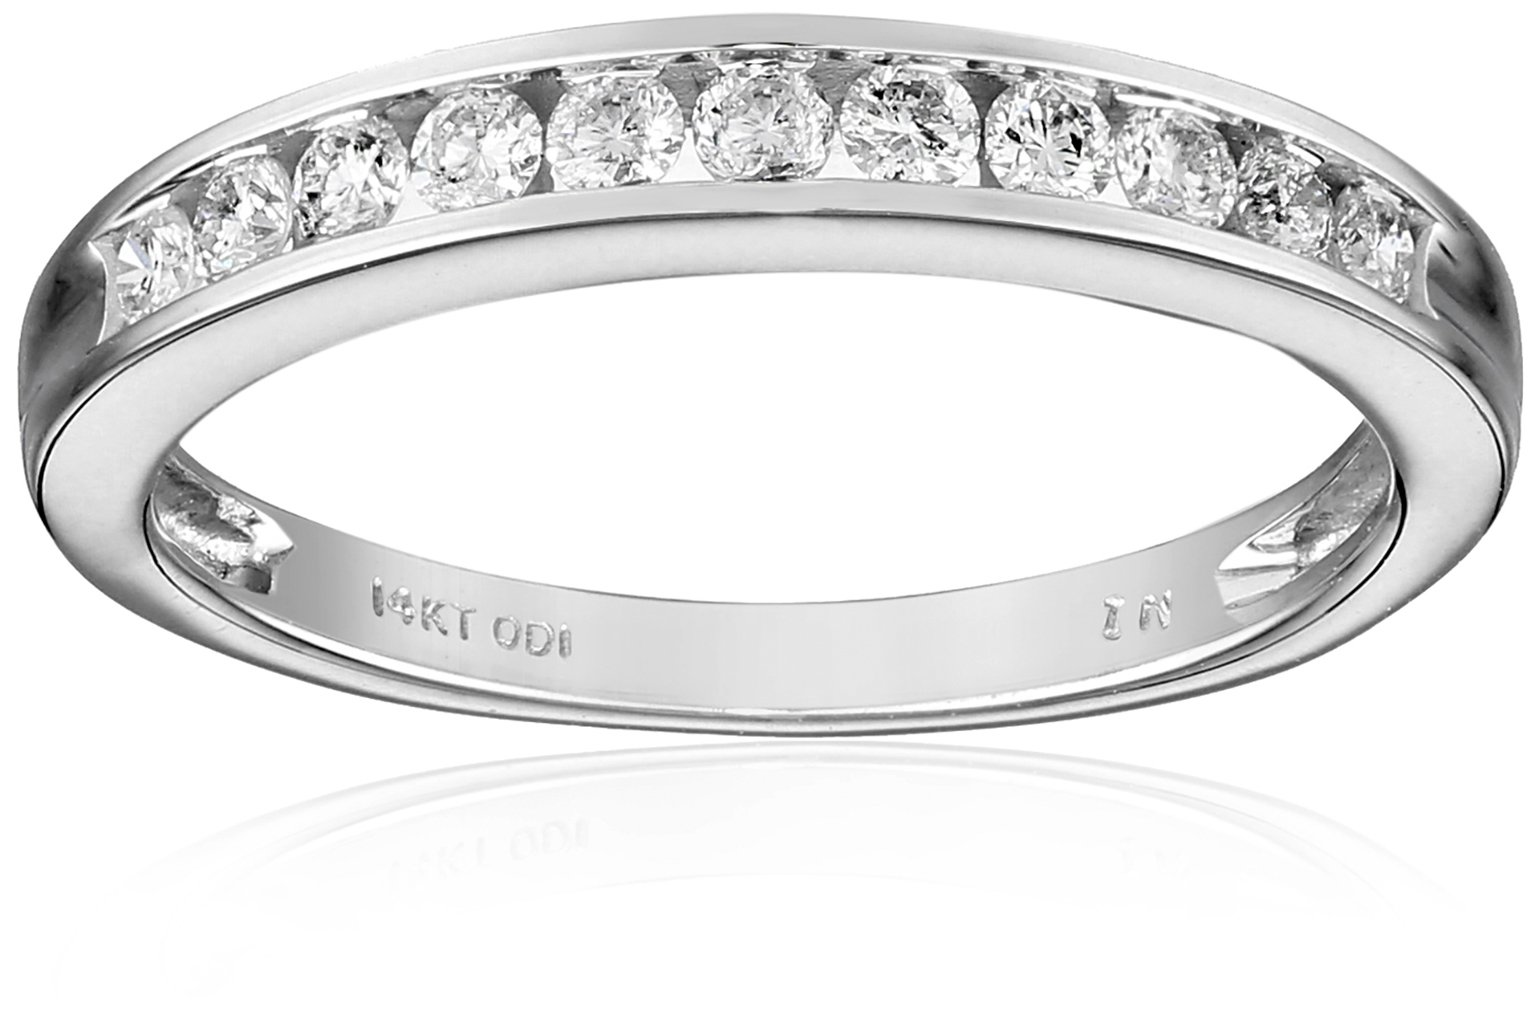 14k White Gold Round Diamond Anniversary Band (1/4 cttw, I-J Color, I2-I3 Clarity), Size 6